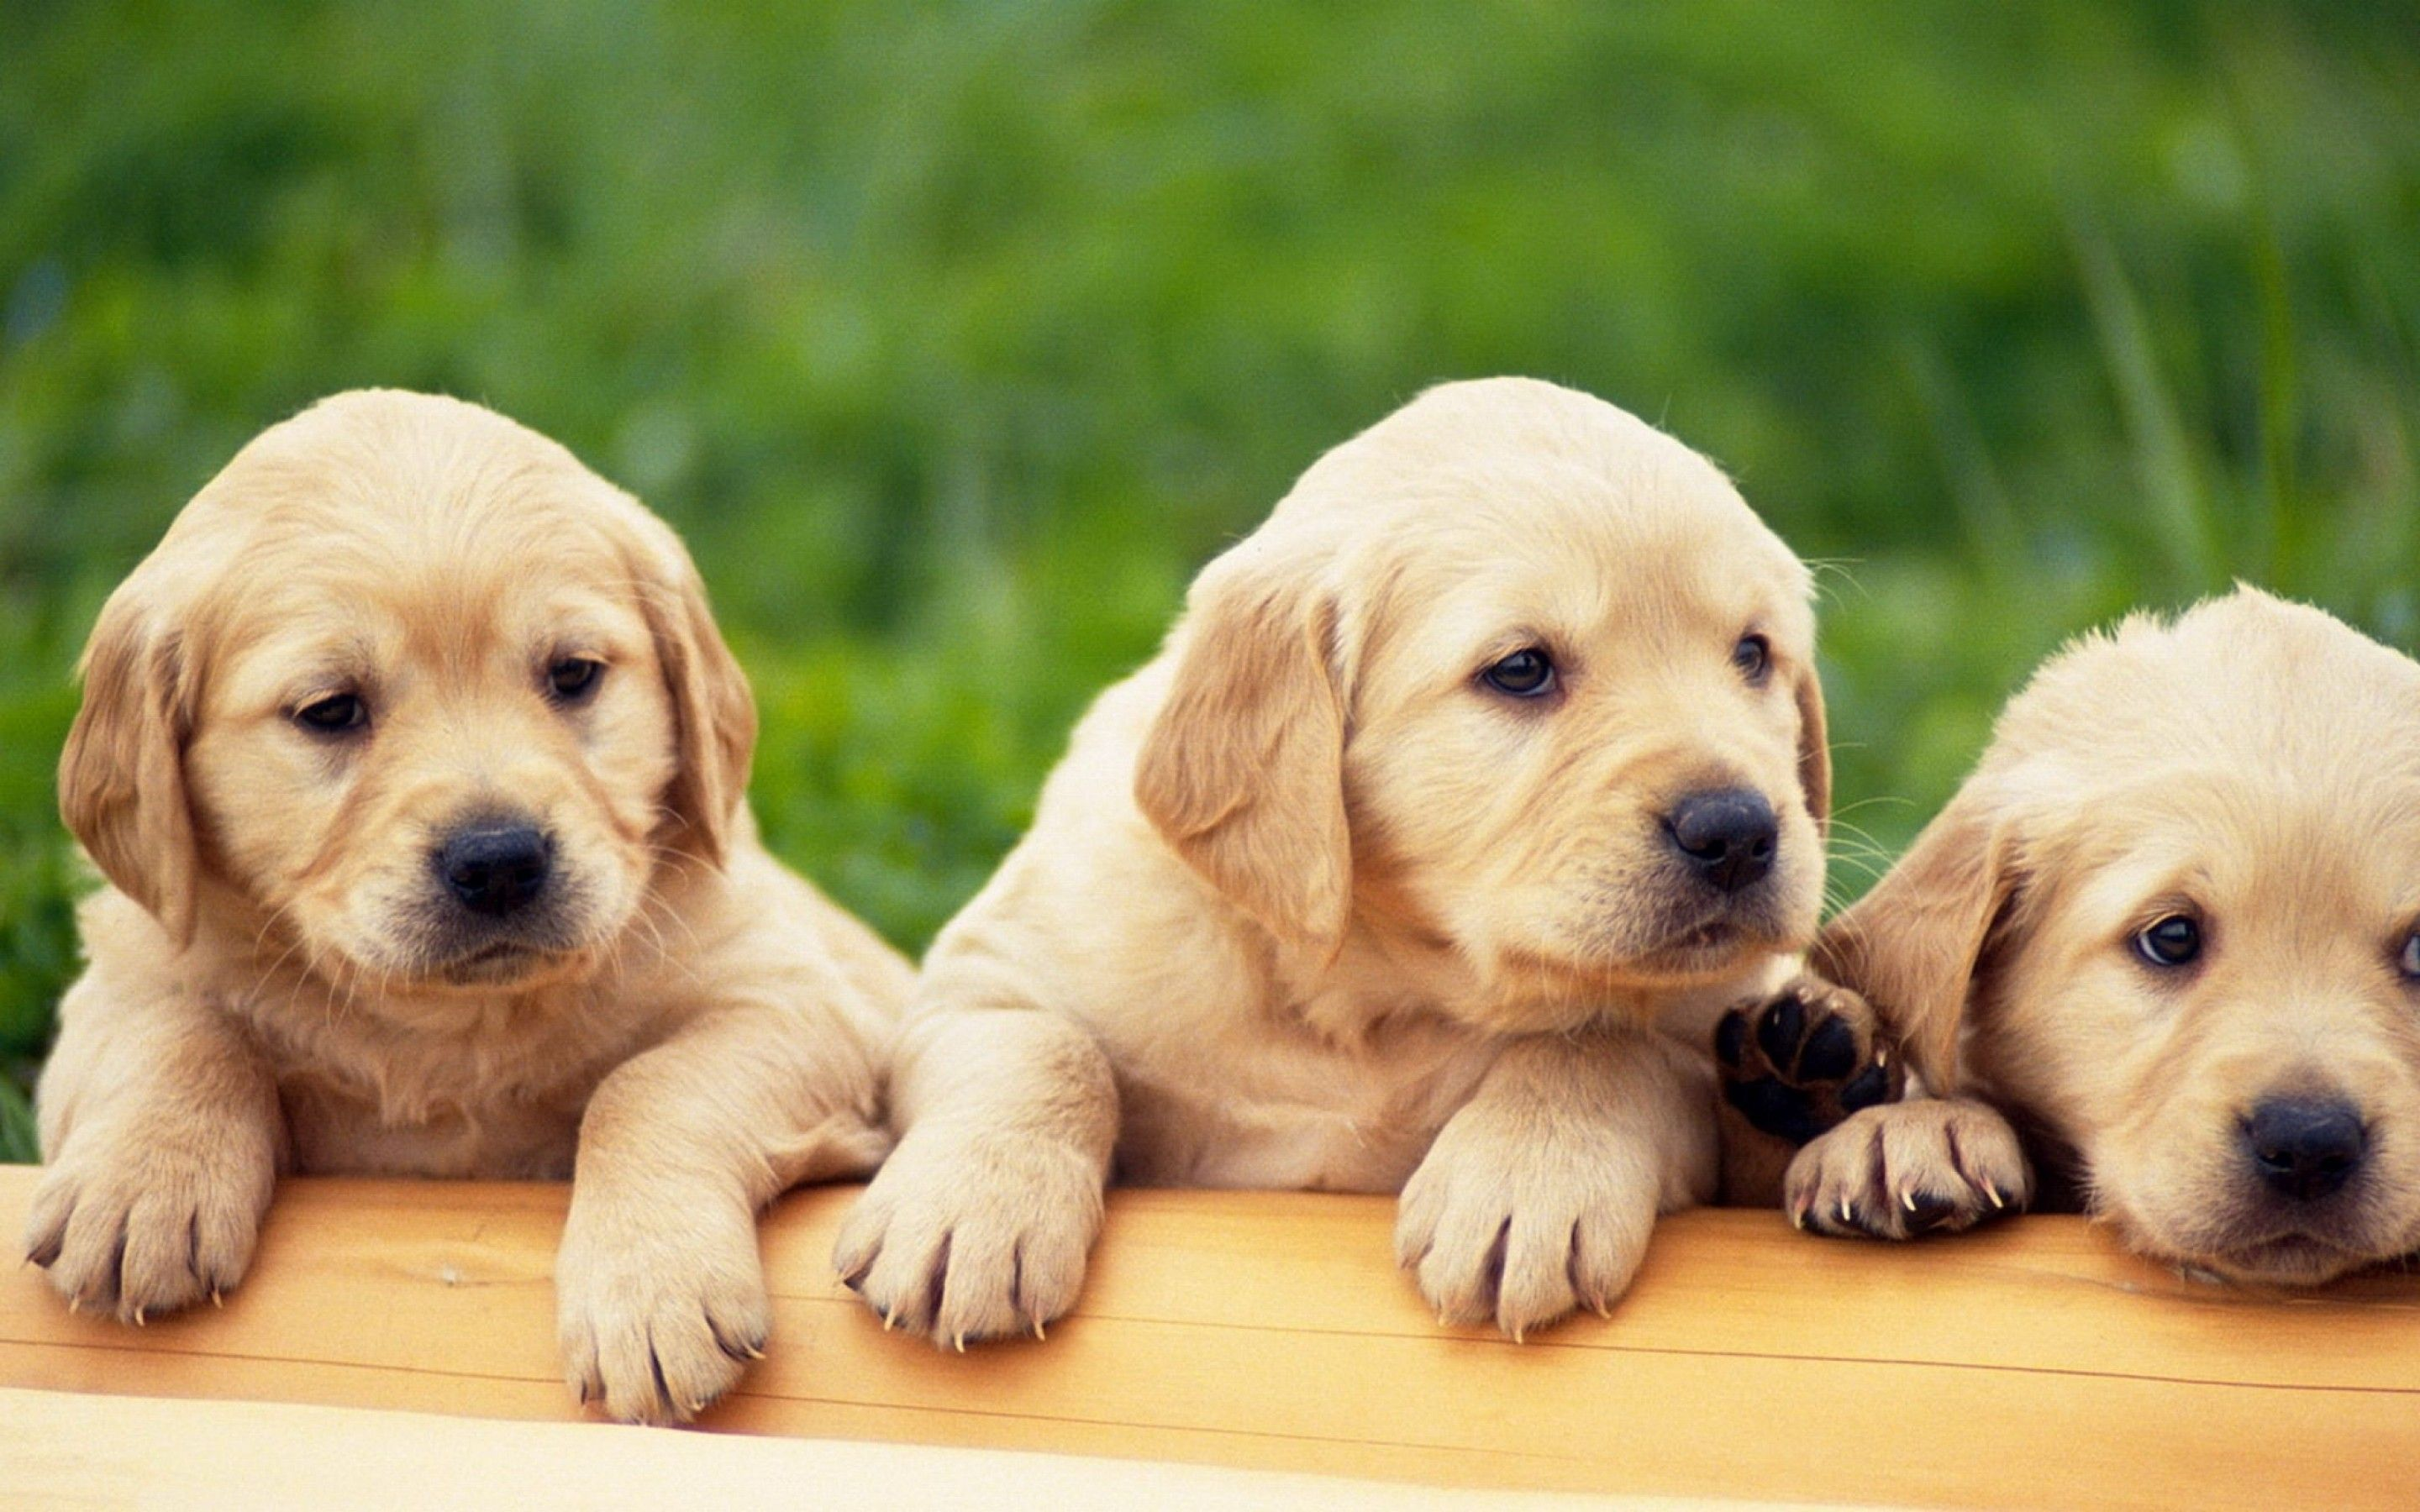 About Pets Animals Cute Puppys Backgrounds With Puppies For